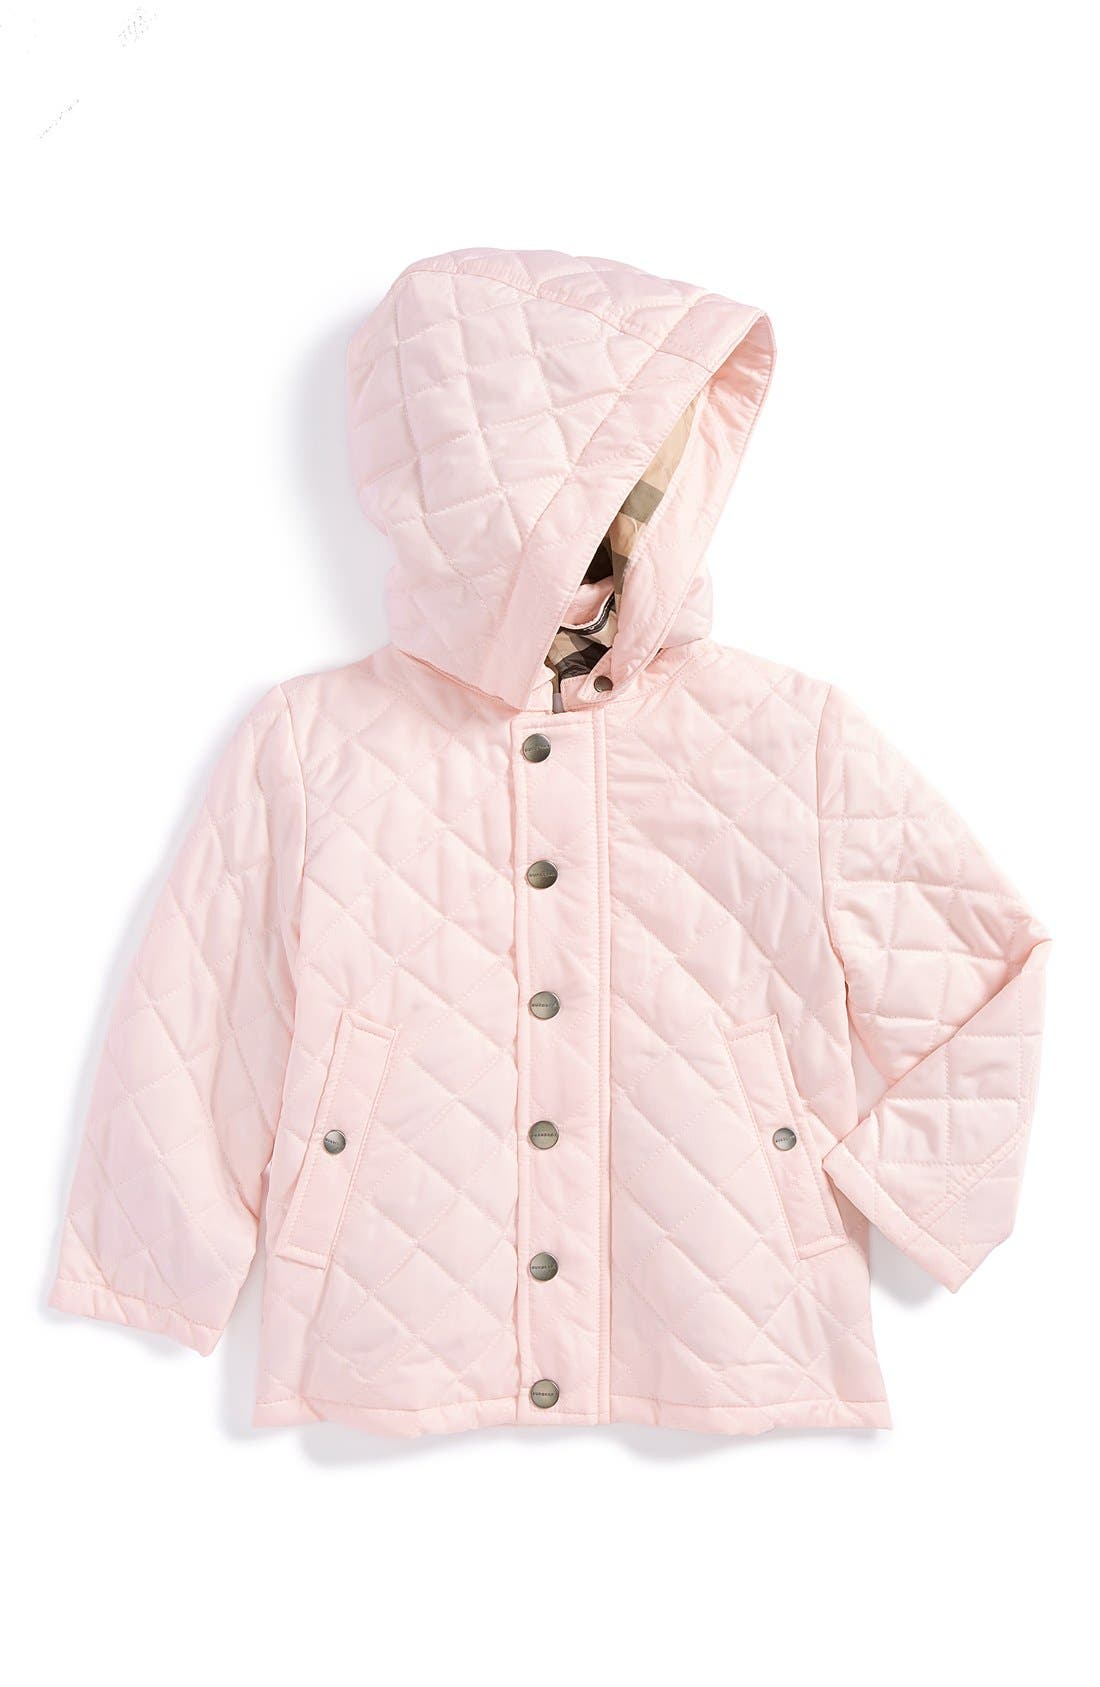 Alternate Image 1 Selected - Burberry Hooded Quilted Jacket (Baby Girls)